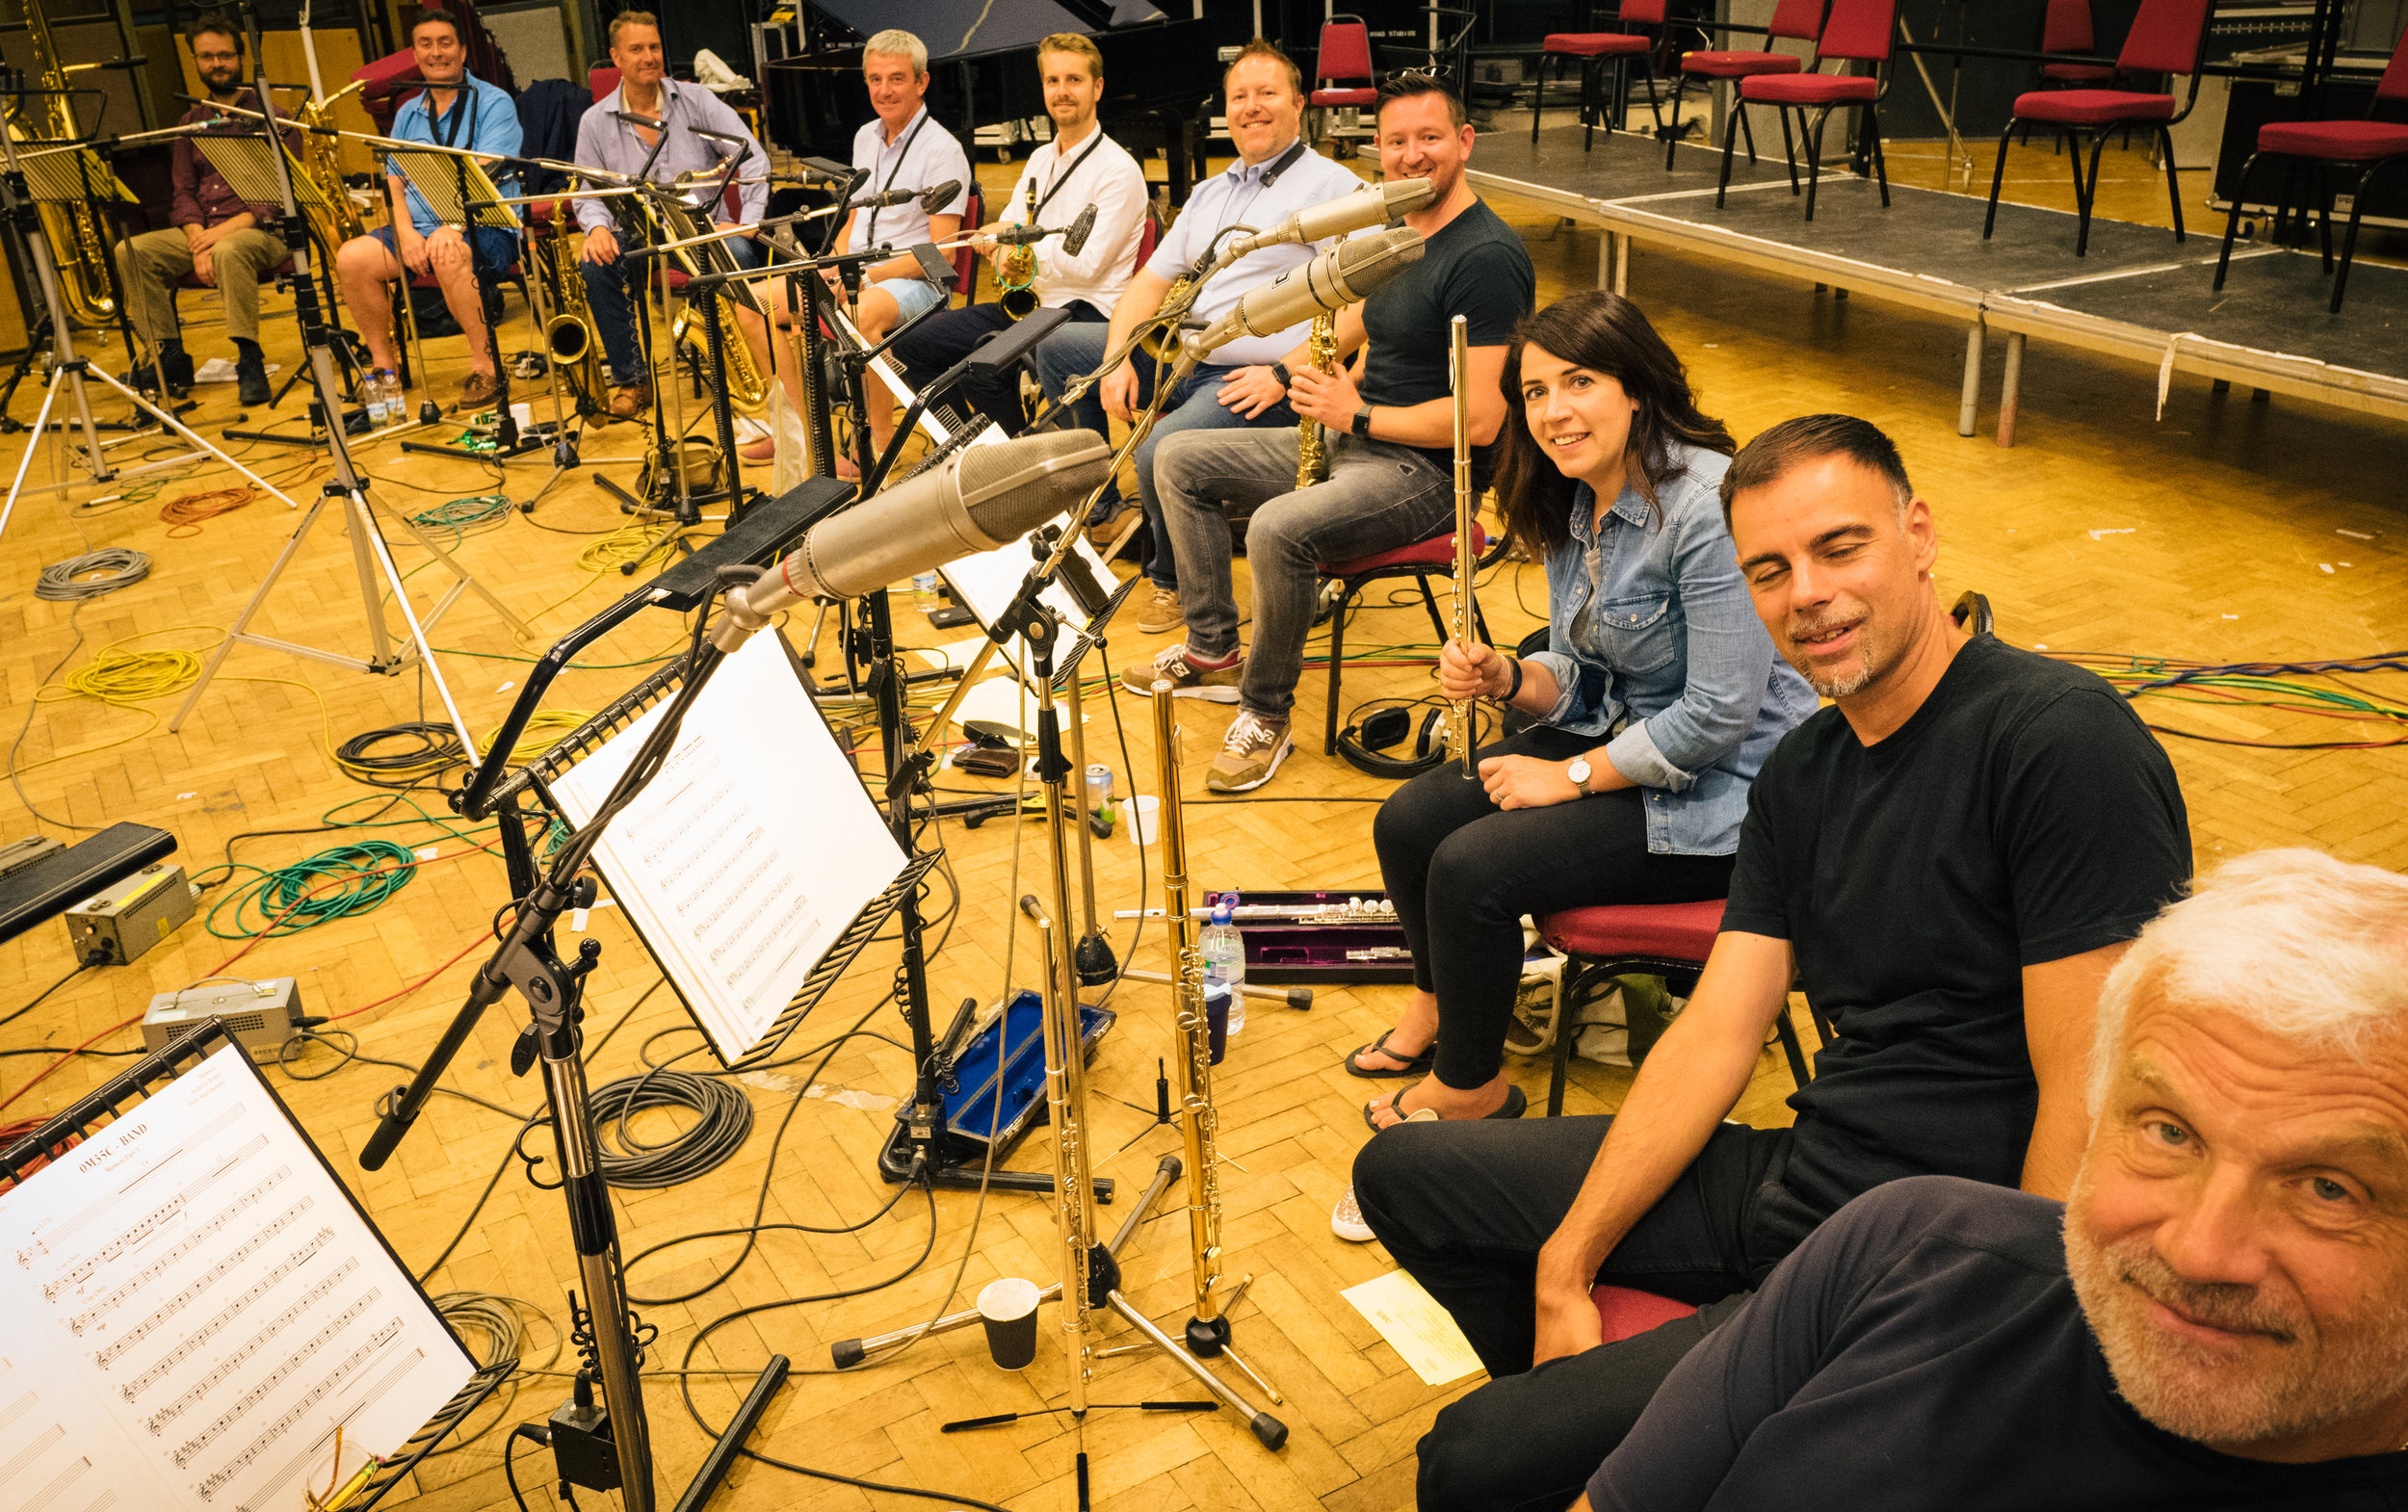 Recording the score for the movie   Vice   ,   Abbey Road  Studio 1, July 2018.  Mick Foster , Dave Bishop, MW, Jamie Talbot, Simon Marsh, Howard McGill, Paul Booth,  Claire McInerney , Nick Moss,  Phil Todd